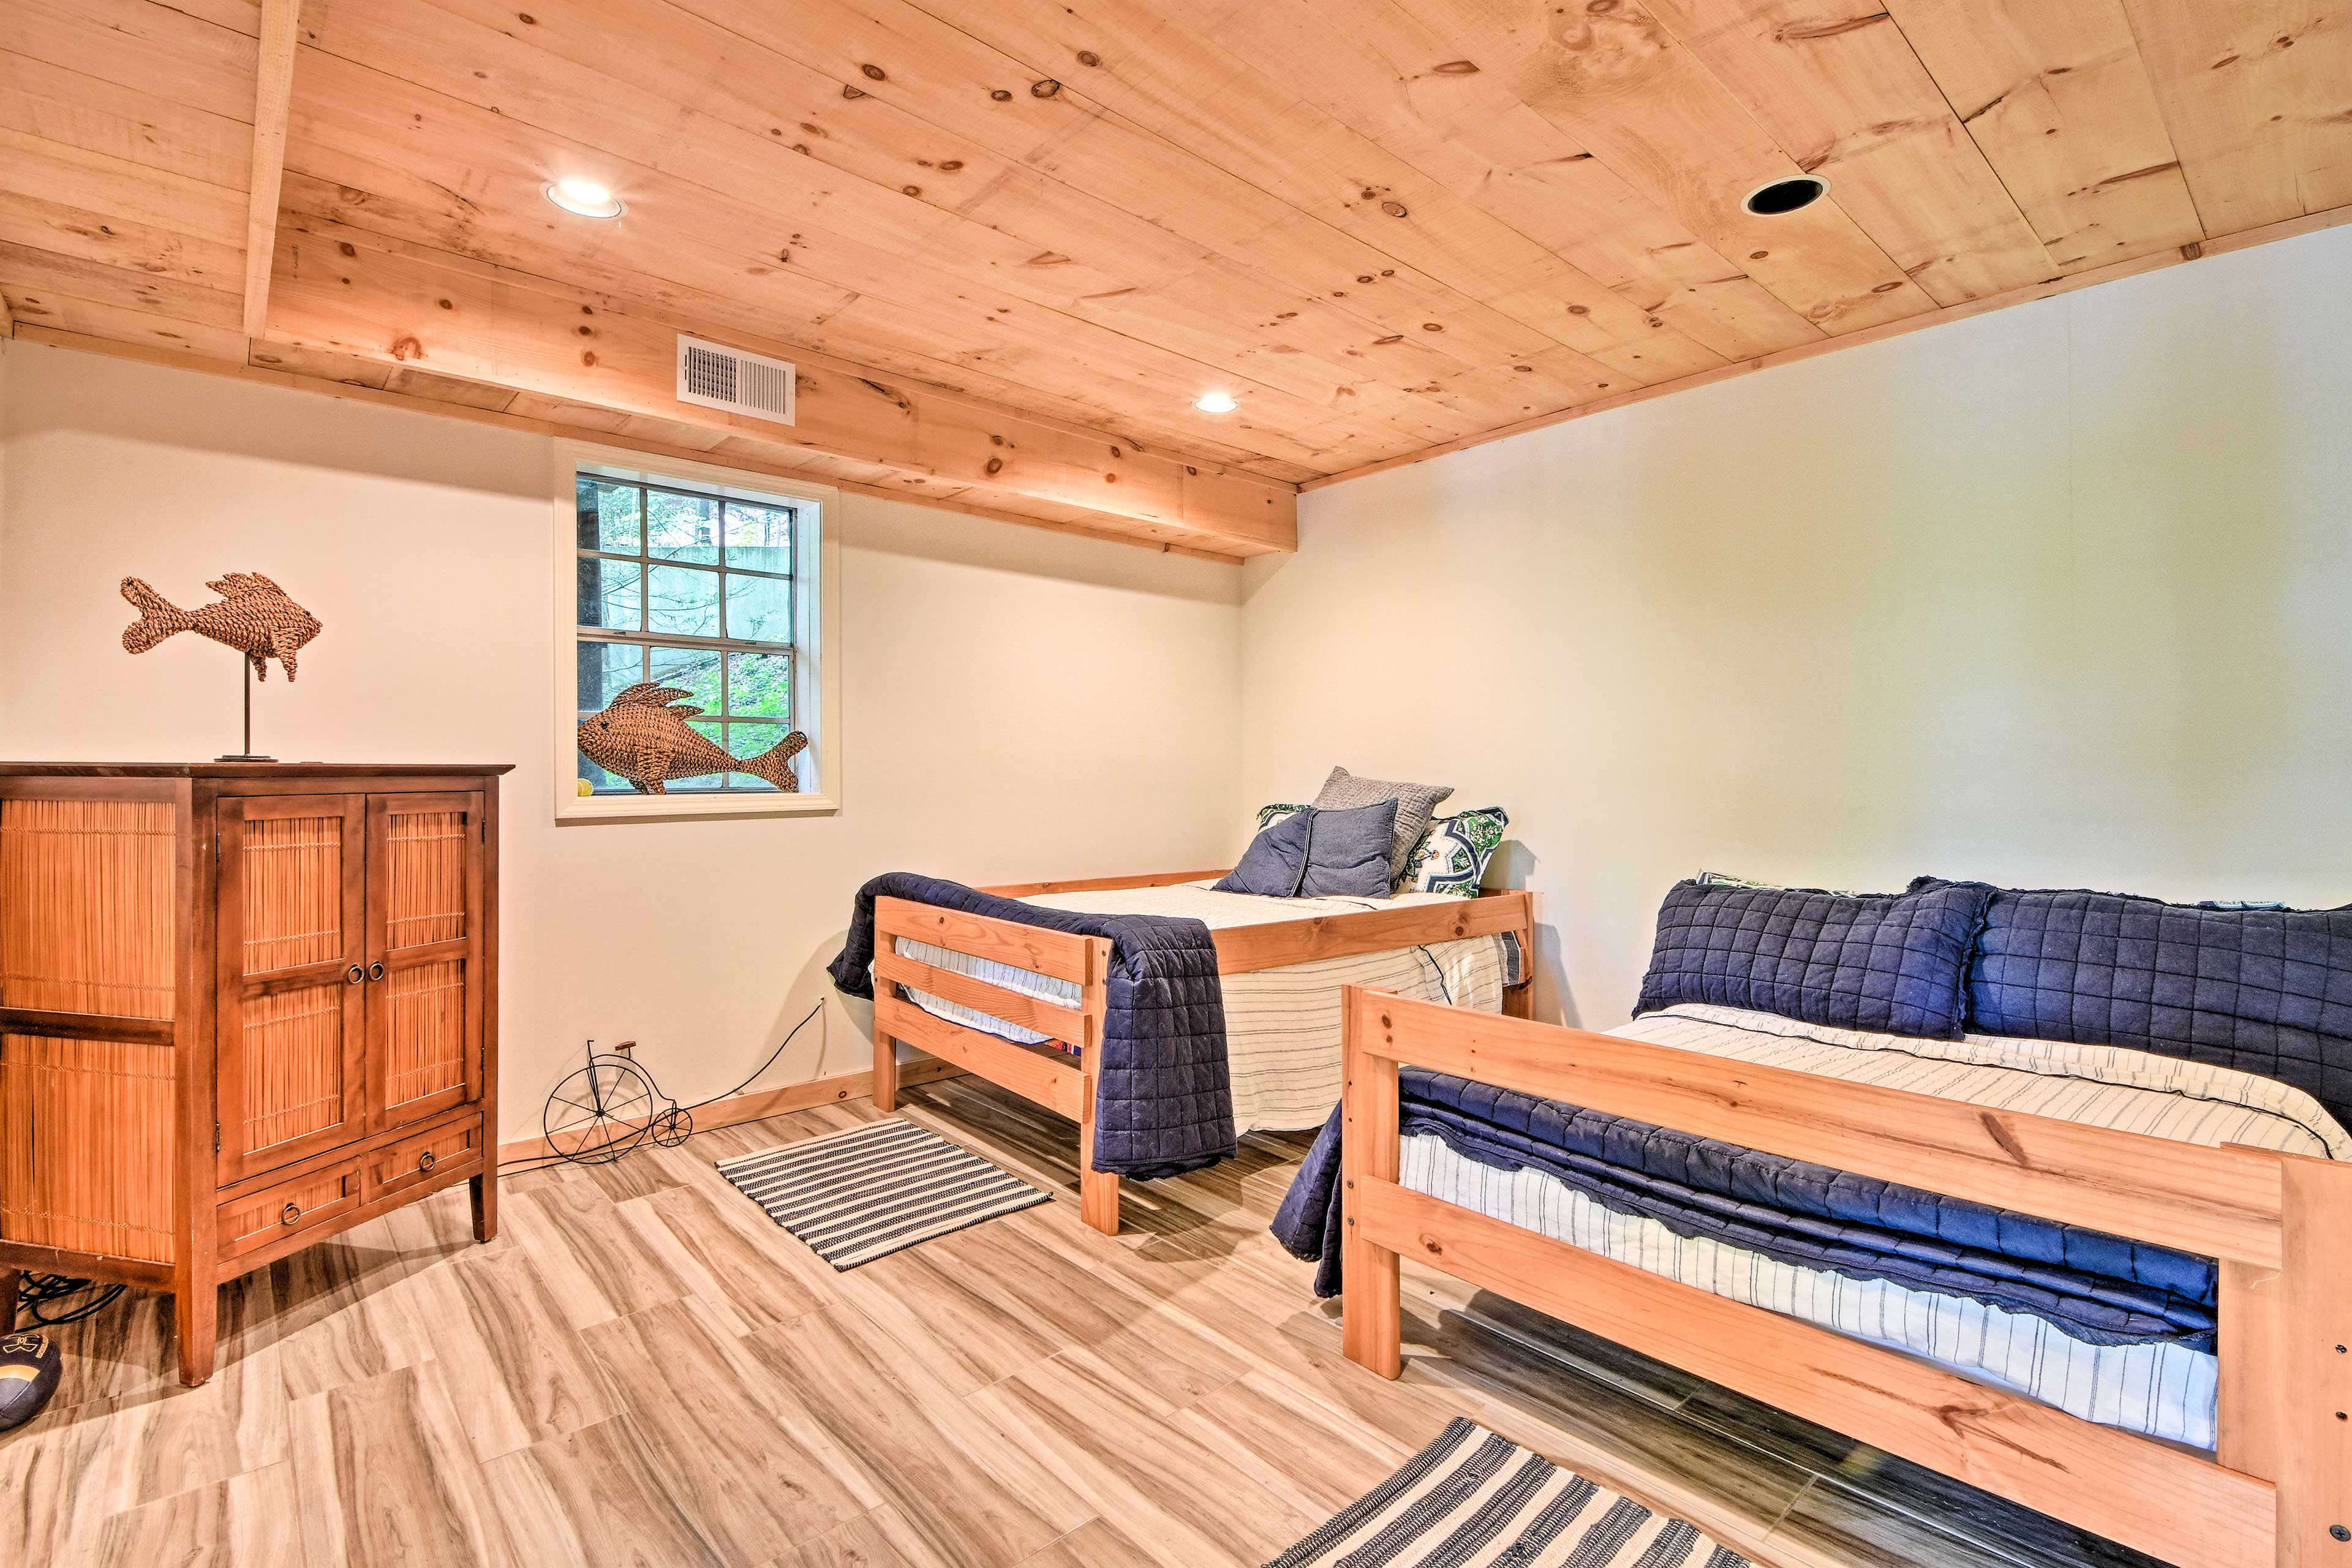 Two full-sized beds can sleep 4 guests.